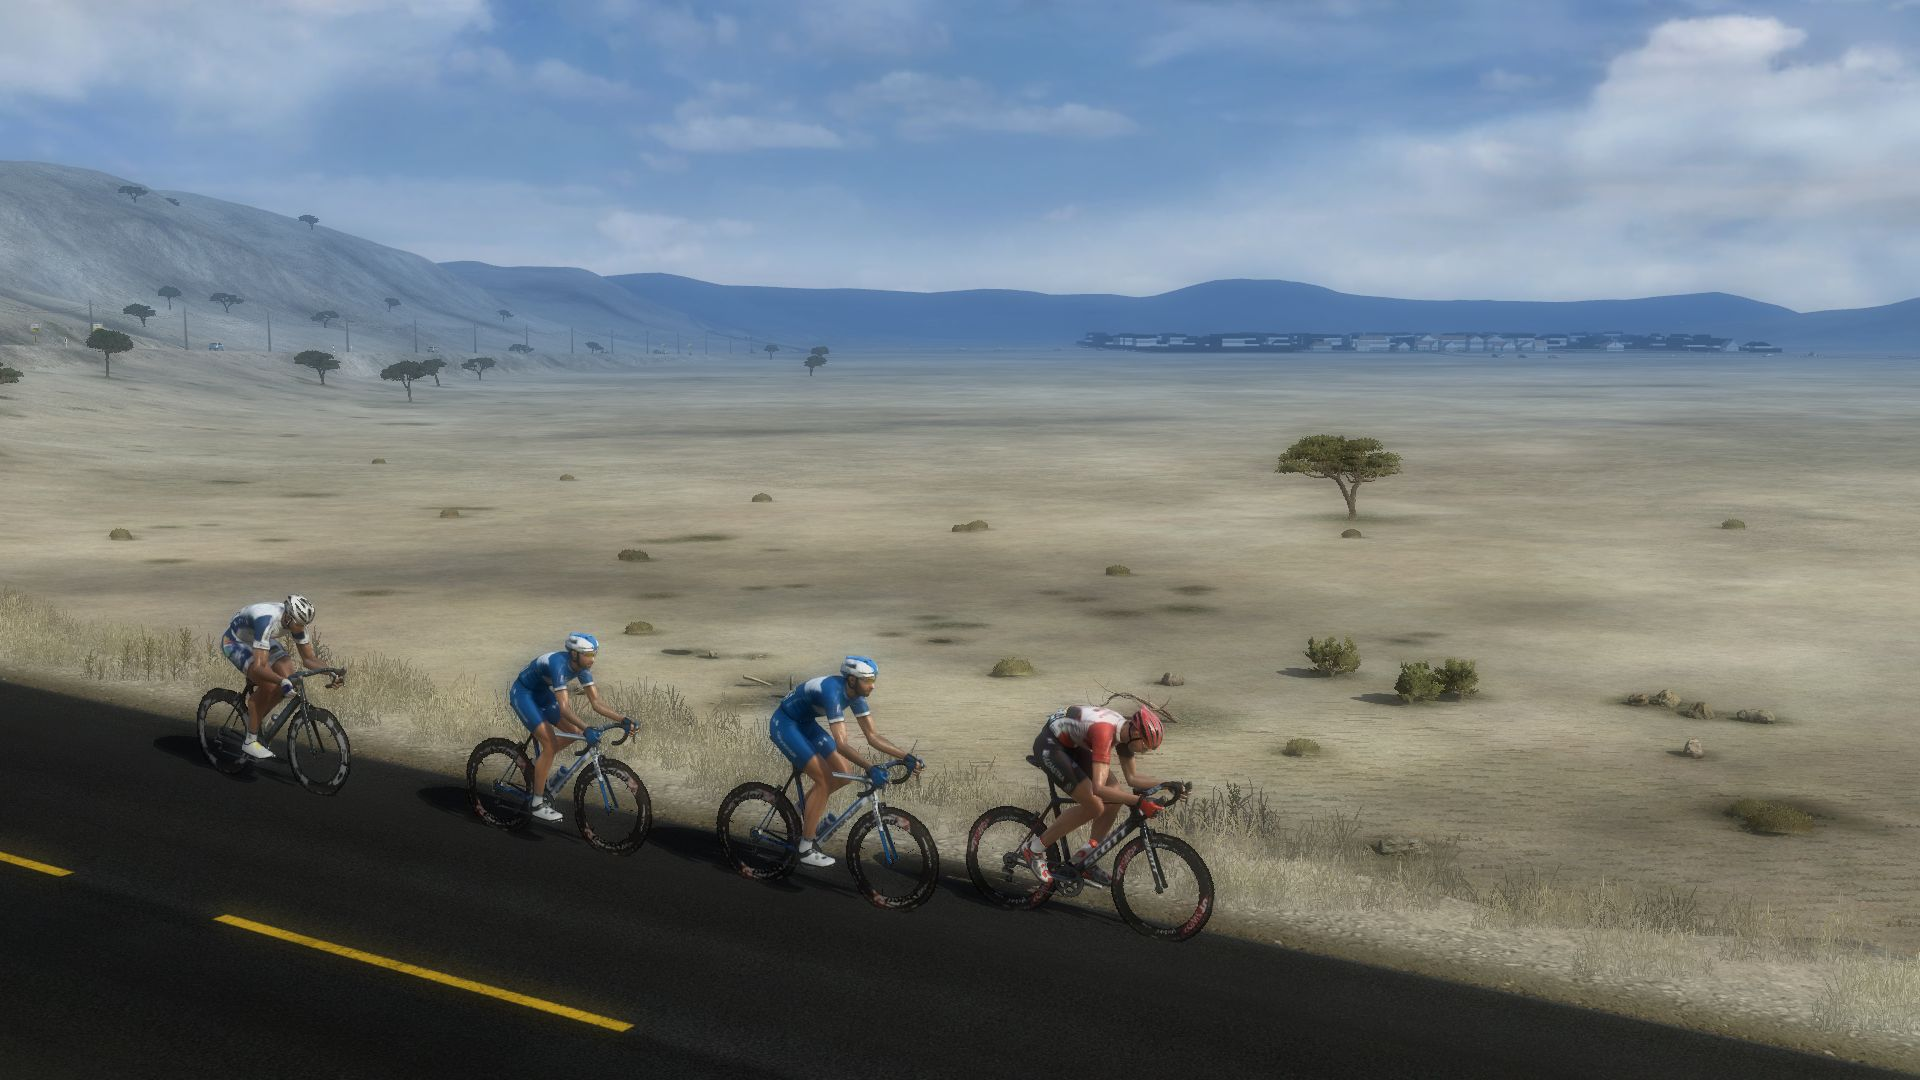 pcmdaily.com/images/mg/2019/Races/C2HC/Eritrea/TOES1%202.jpg